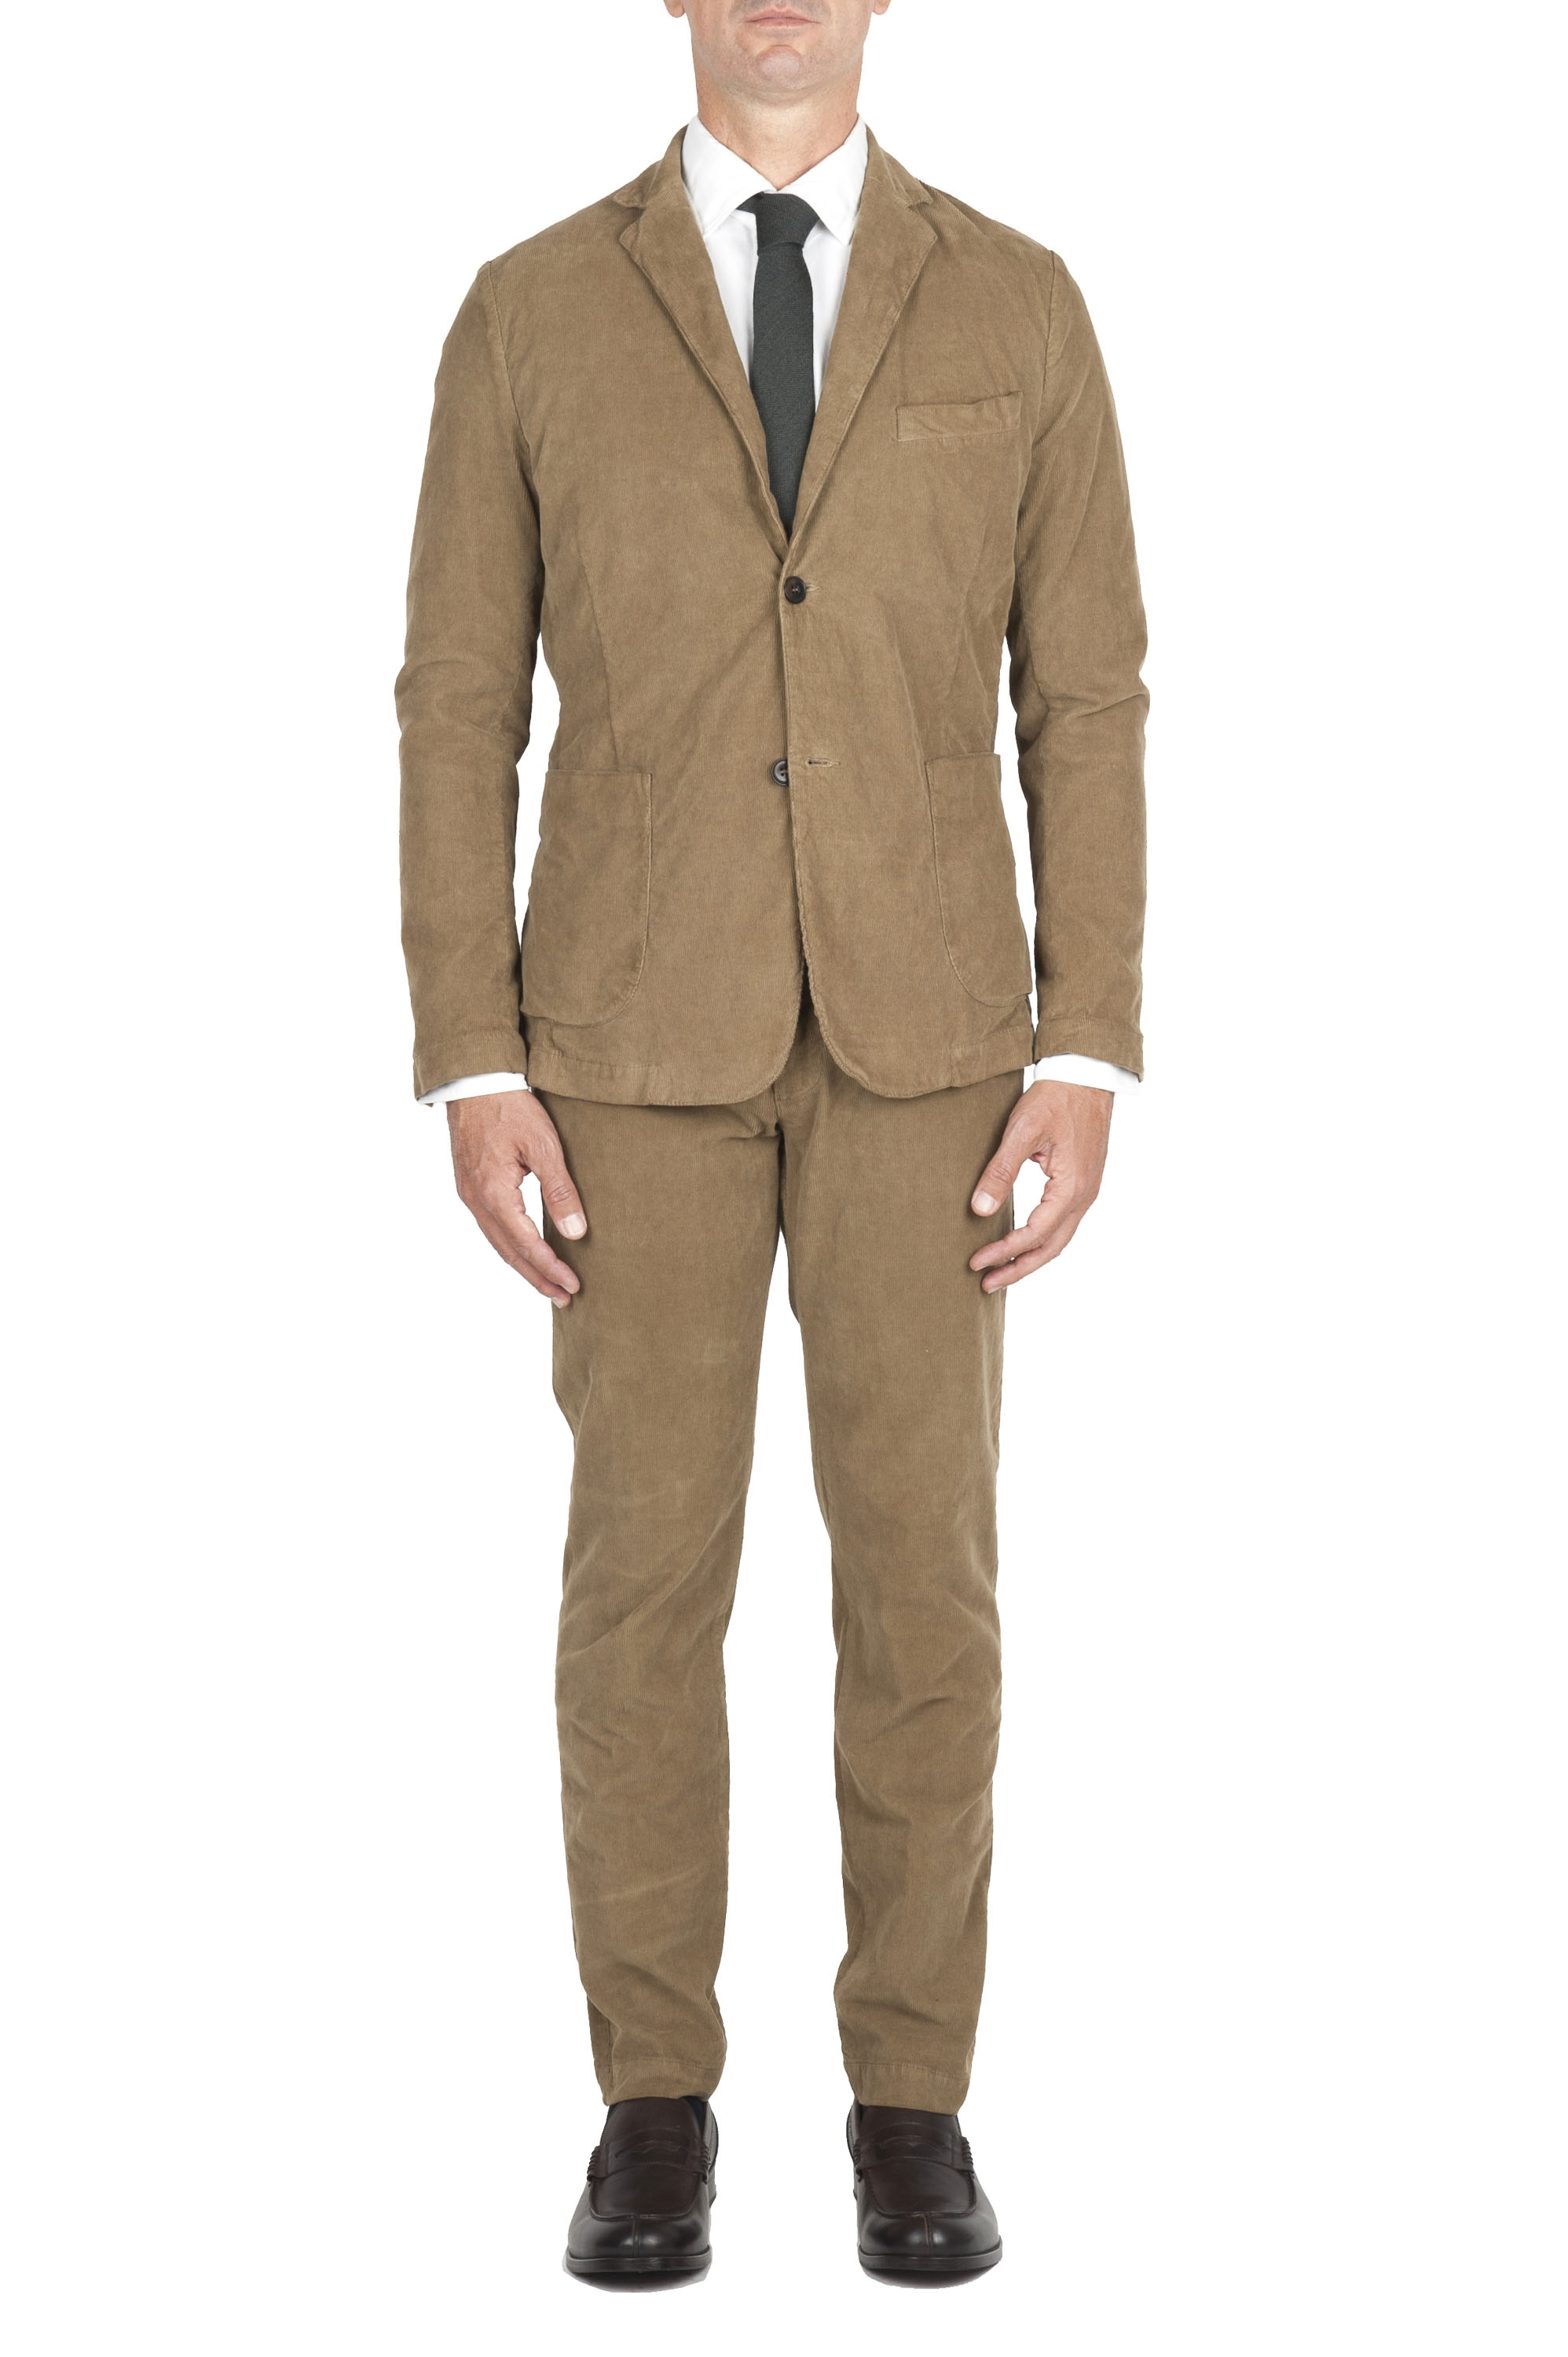 SBU 01550_AW19 Beige stretch corduroy sport suit blazer and trouser 01